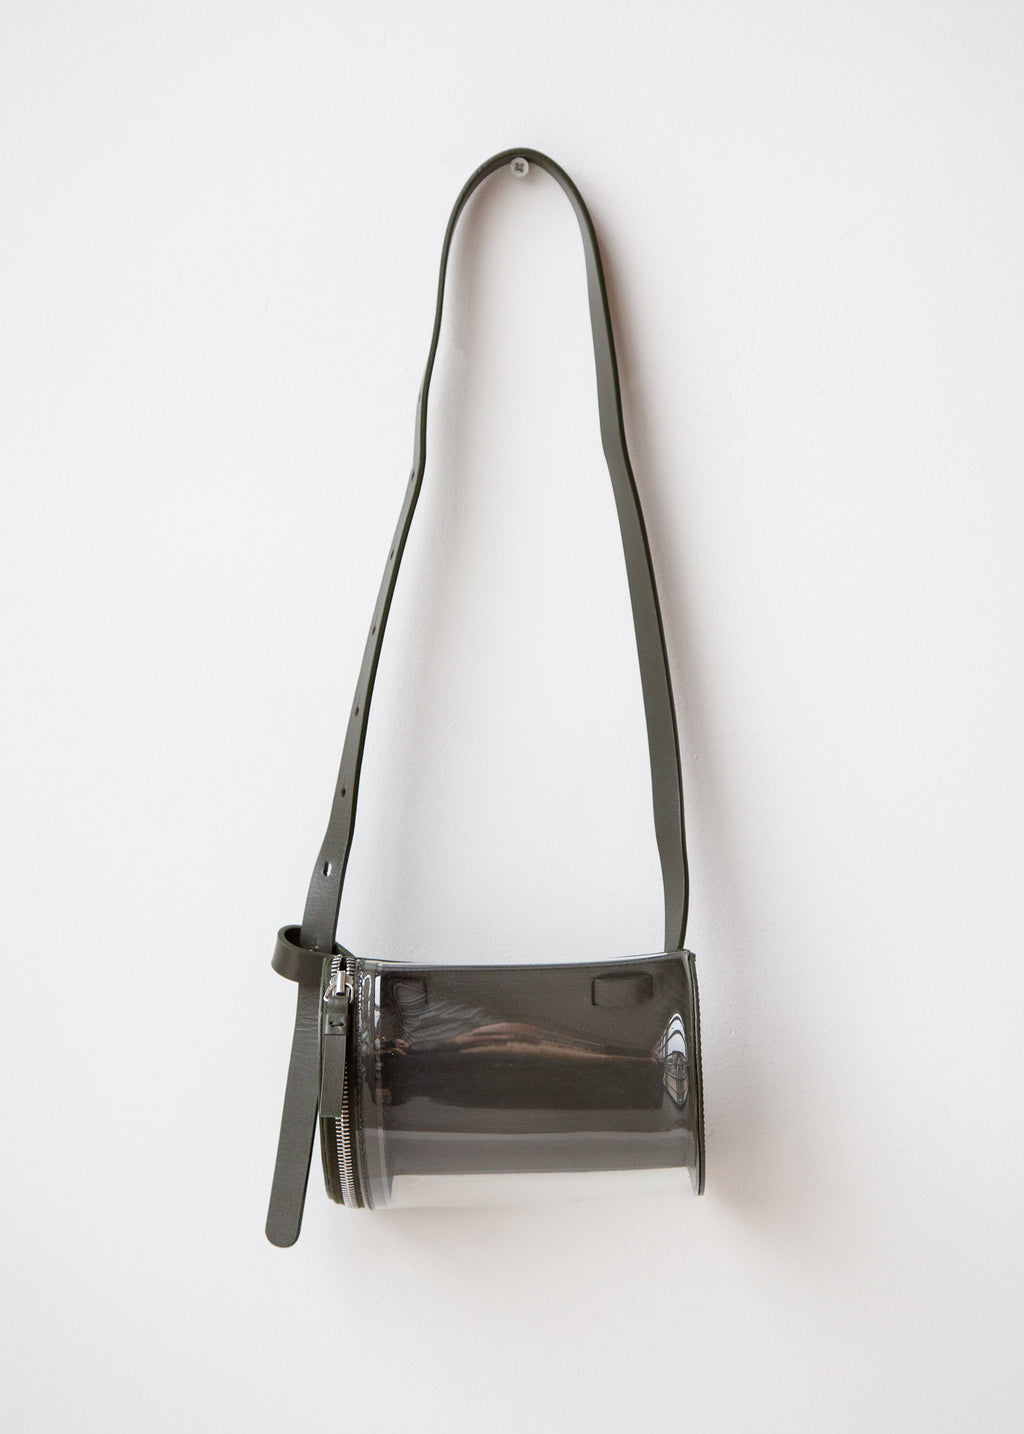 Beltpack in Clear PVC - SOLD OUT